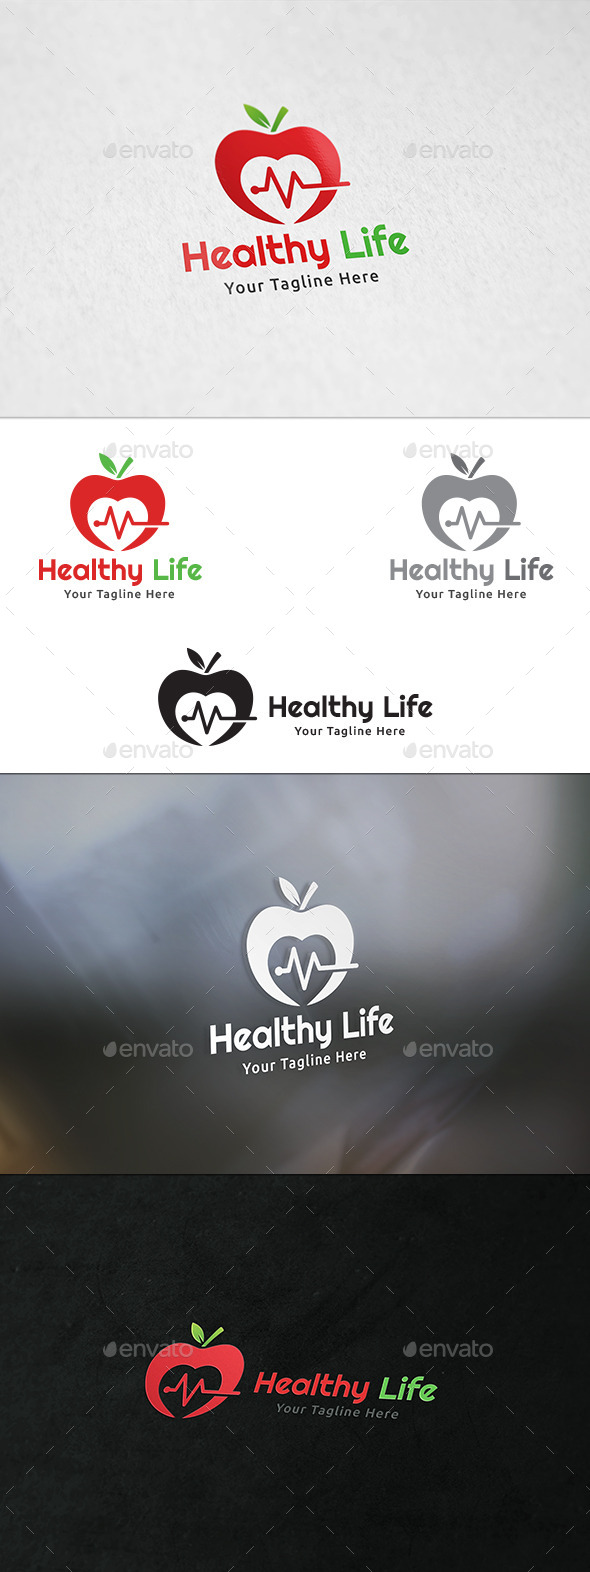 GraphicRiver Healthy Life Logo Template 11855834